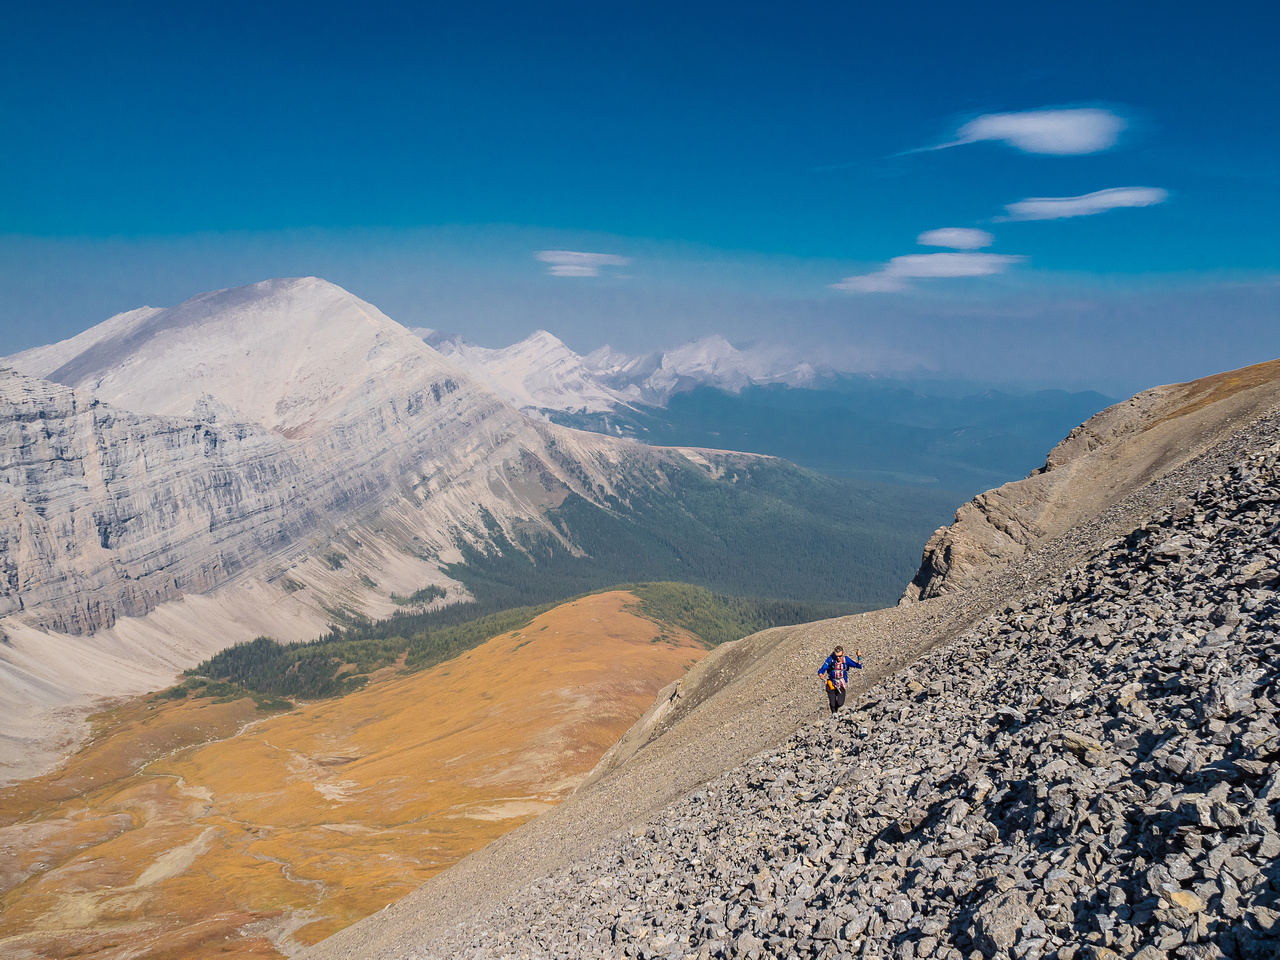 The smoke is approaching as we continue to grind up the west face scree slopes.